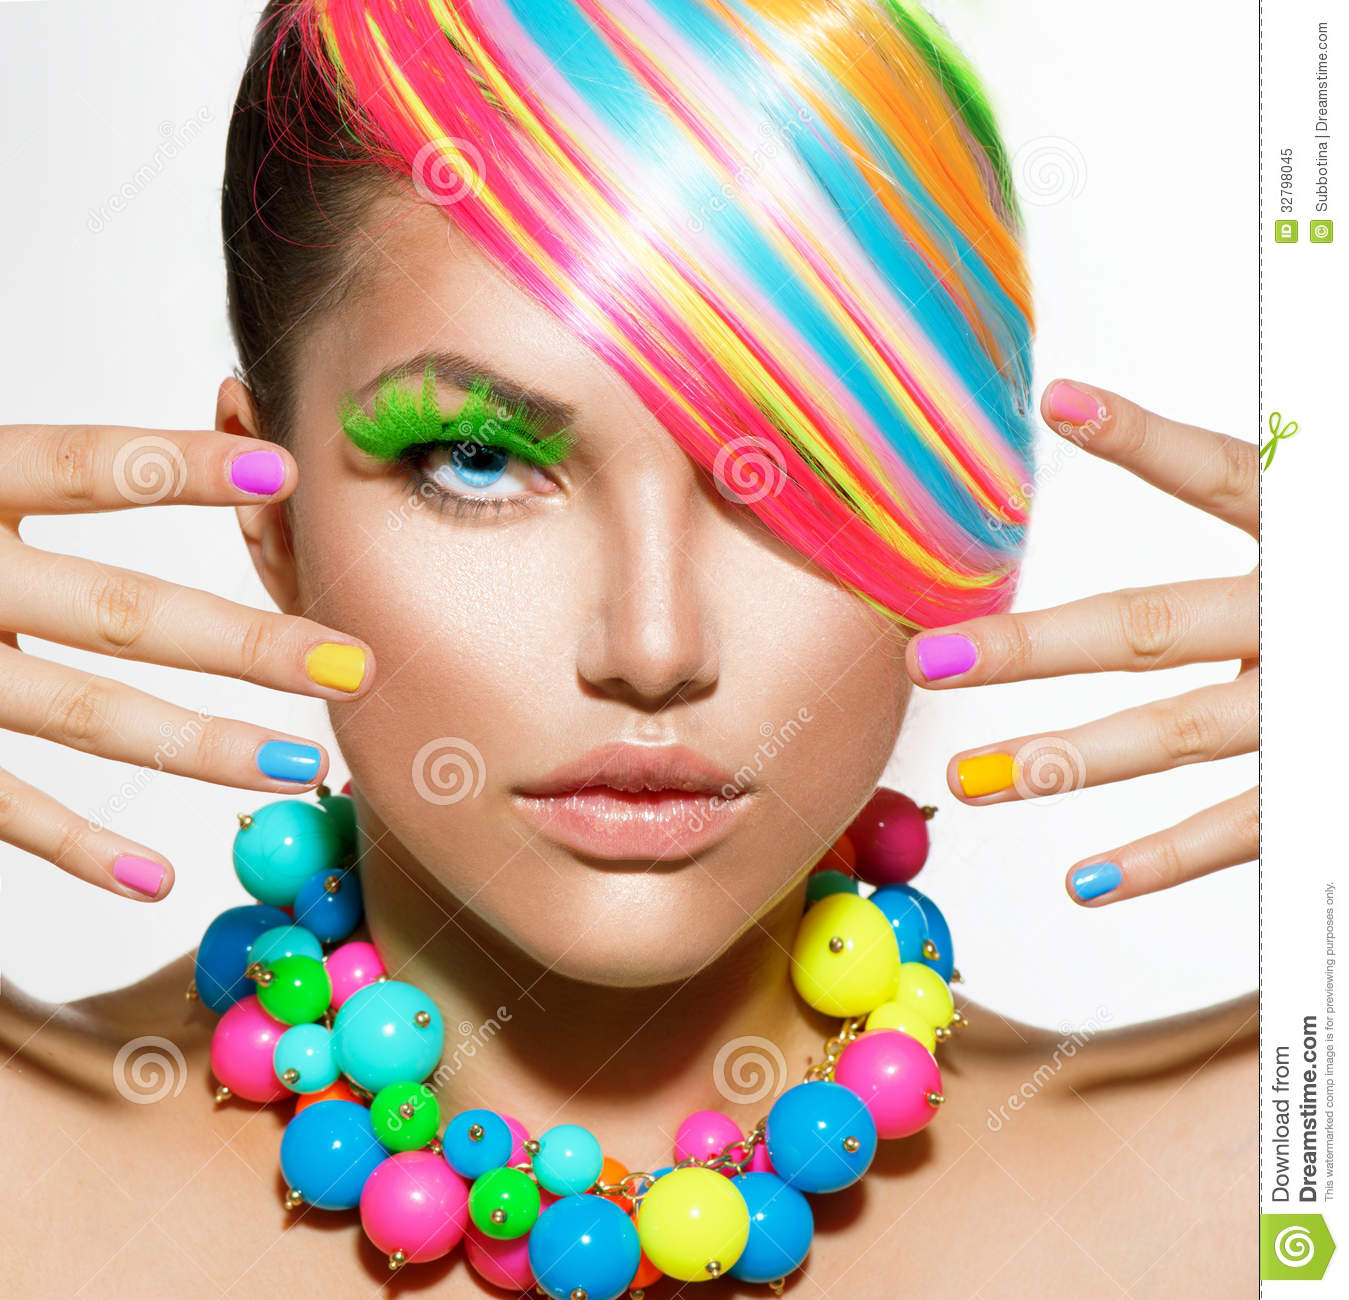 makeup colorful portrait hair beauty accessories kleurrijke met nails nail maquillaje accessory rainbow preview colors foto stuff colorido dreamstime summer